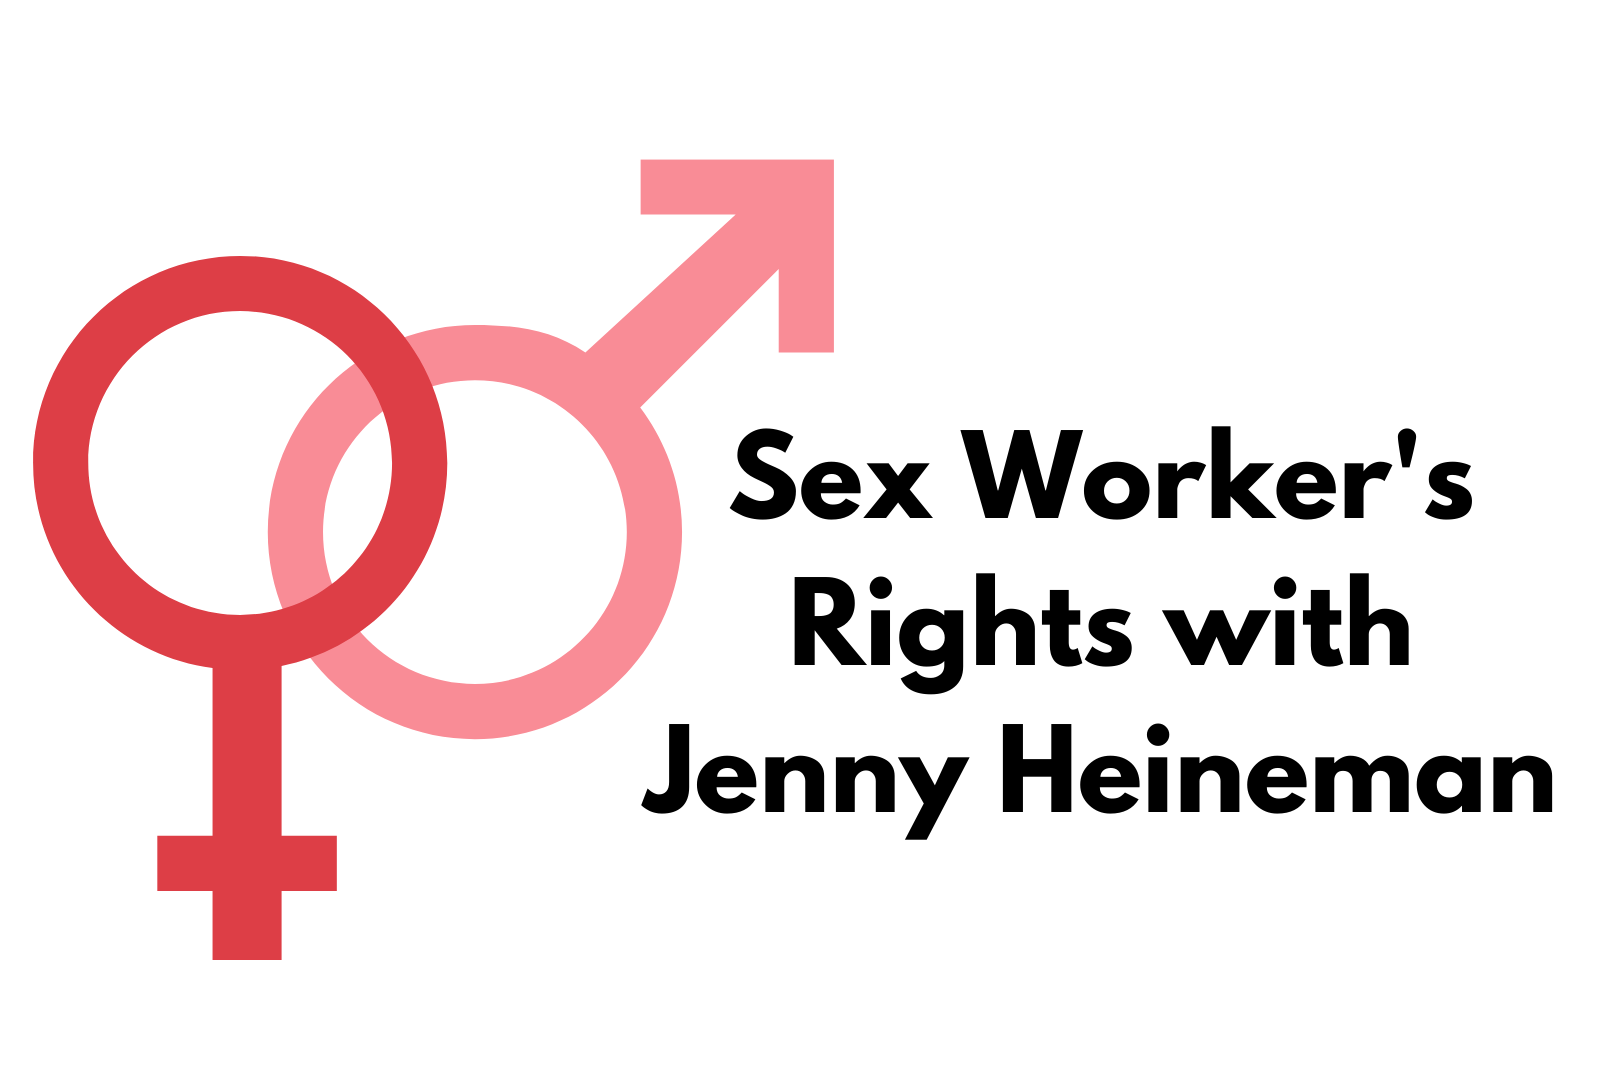 Ep 32. Sex Worker's Rights with Jenny Heineman